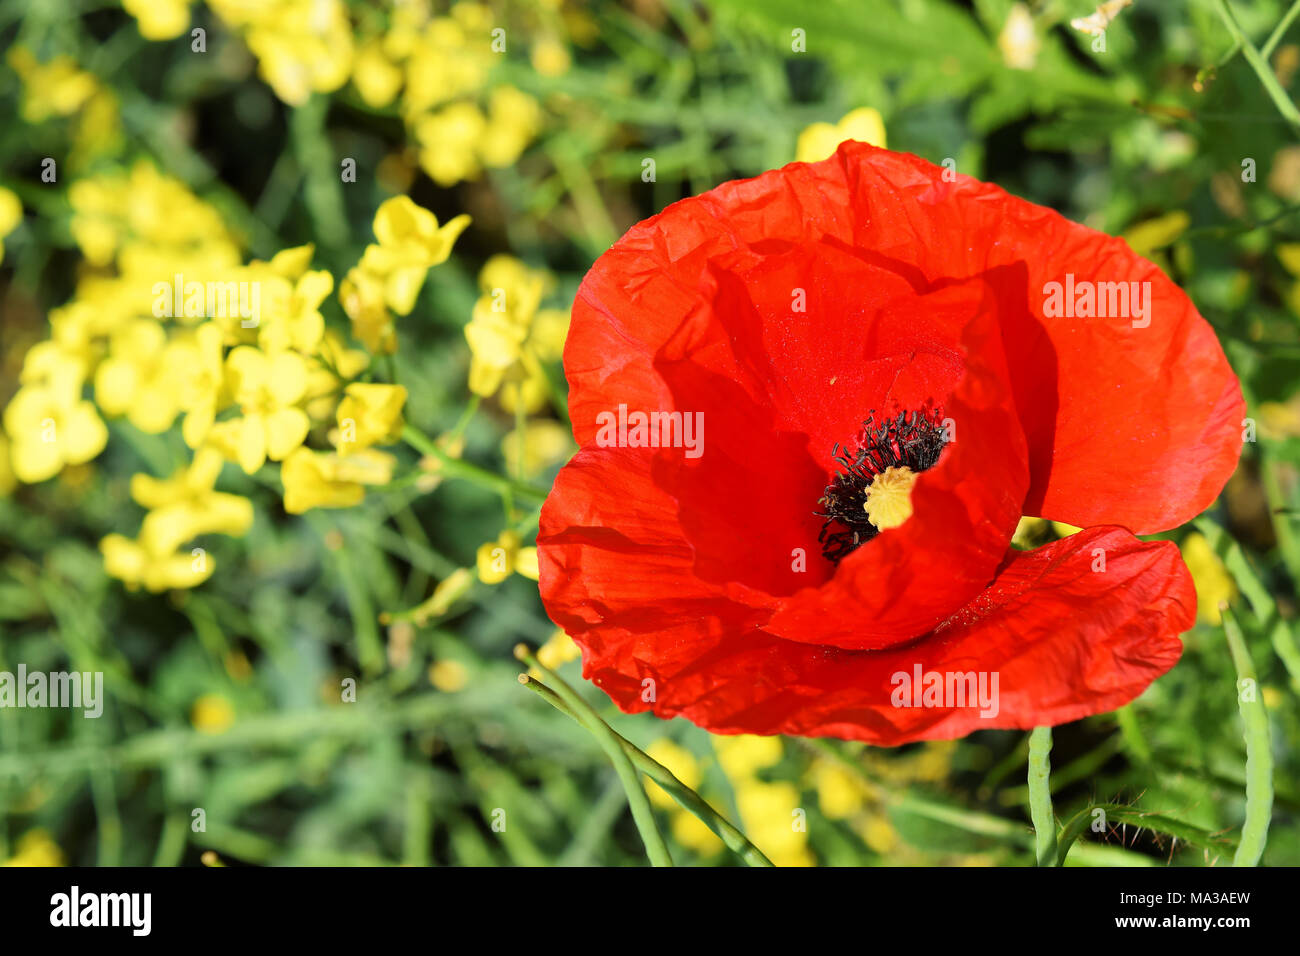 Poppy flower symbol of anzac day stock photo 178324353 alamy poppy flower symbol of anzac day mightylinksfo Image collections